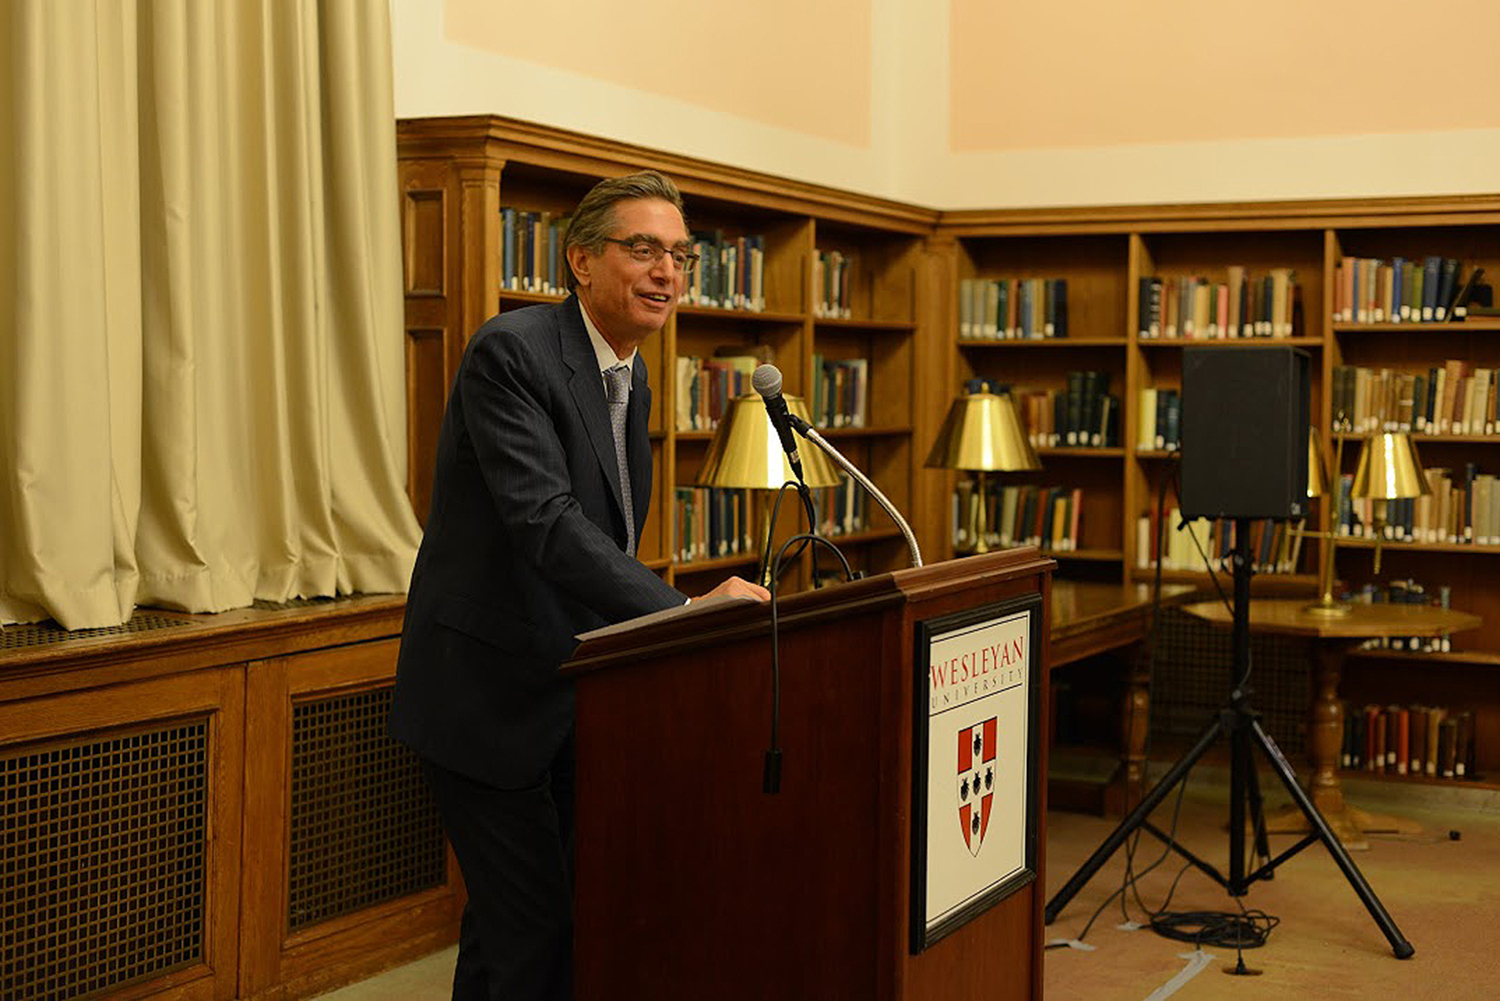 The annual lecture is hosted by the Friends of the Wesleyan Library.